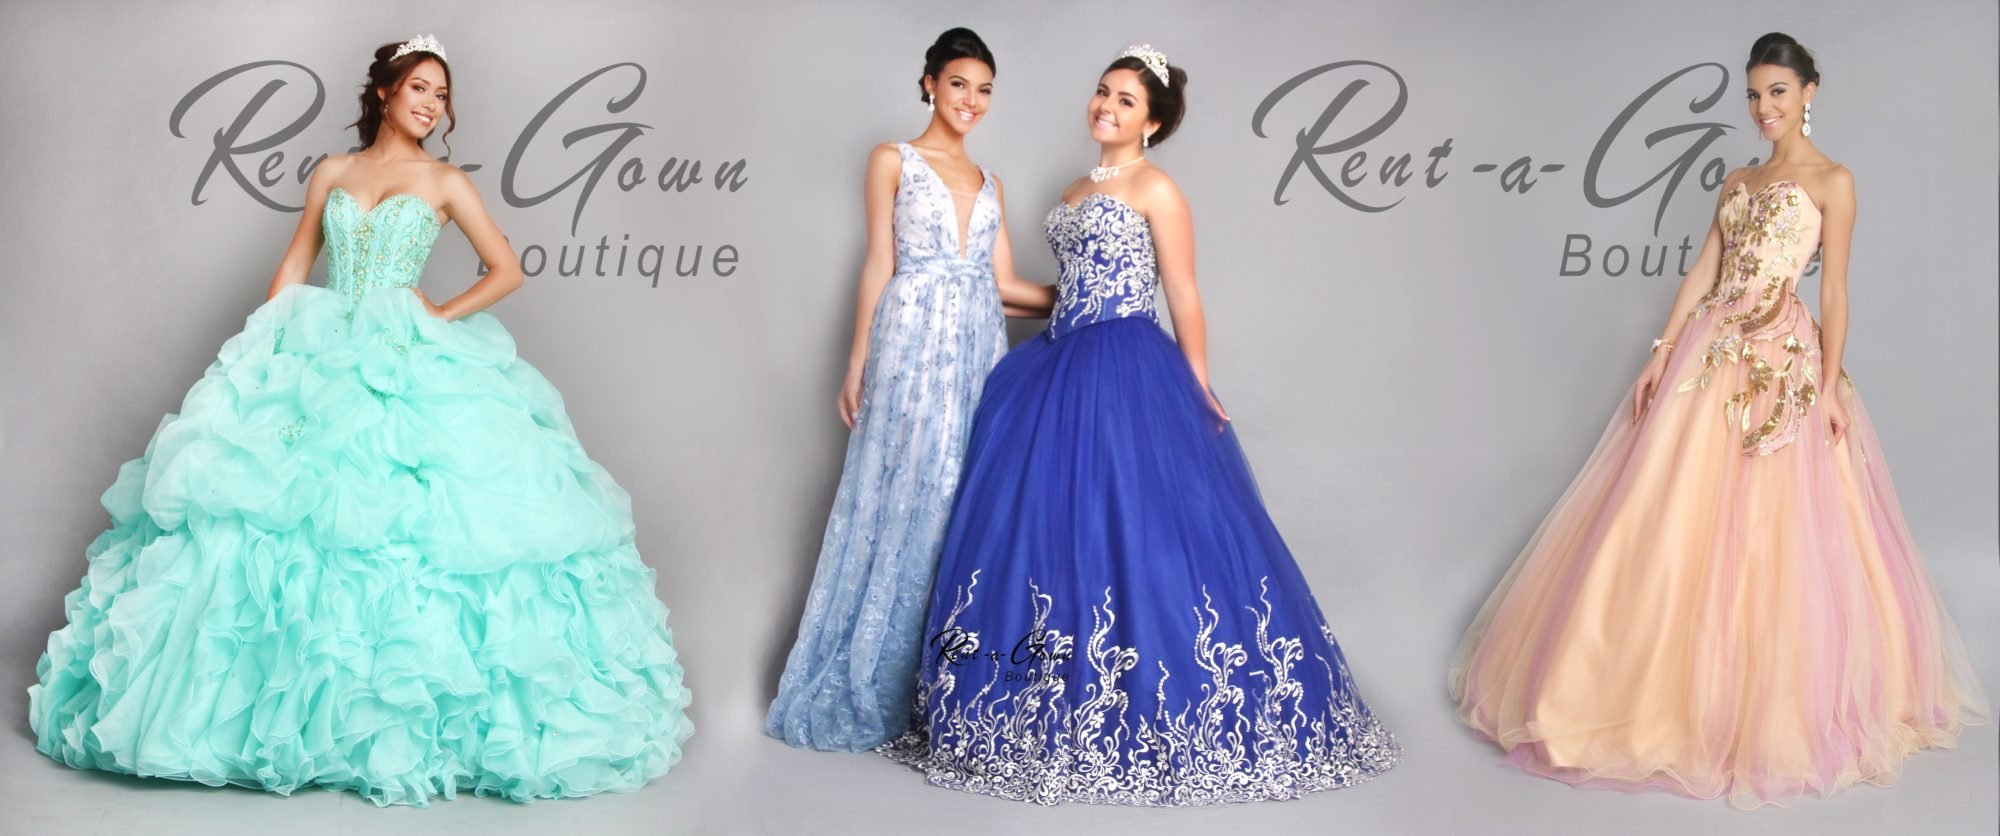 Fifteen Dresses Gown for Rent